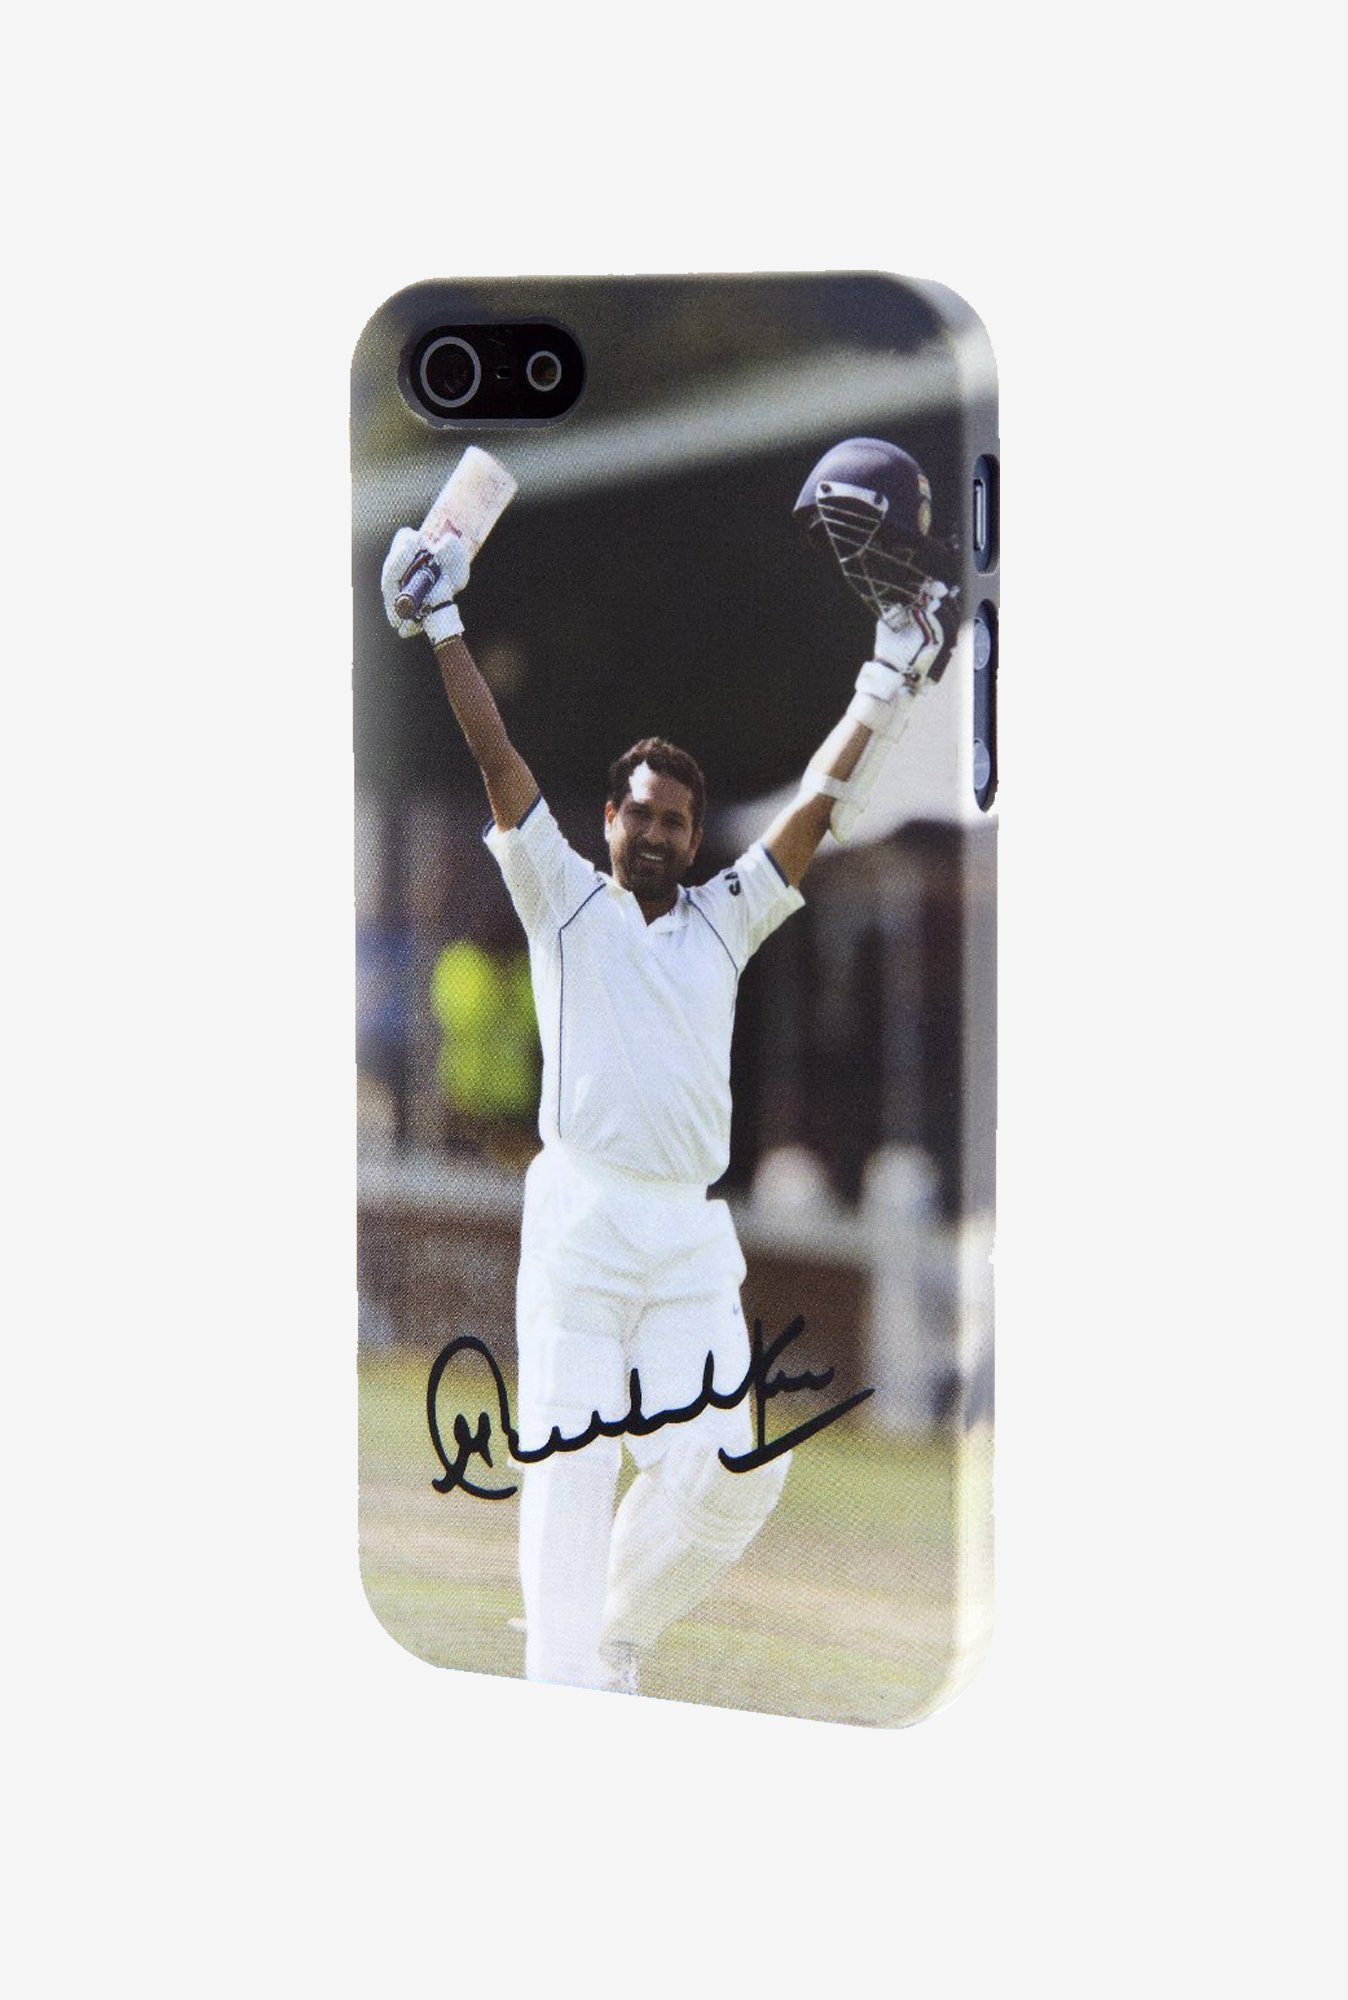 iAccy STI001 Sachin Signature Case Multicolor for iPhone 5